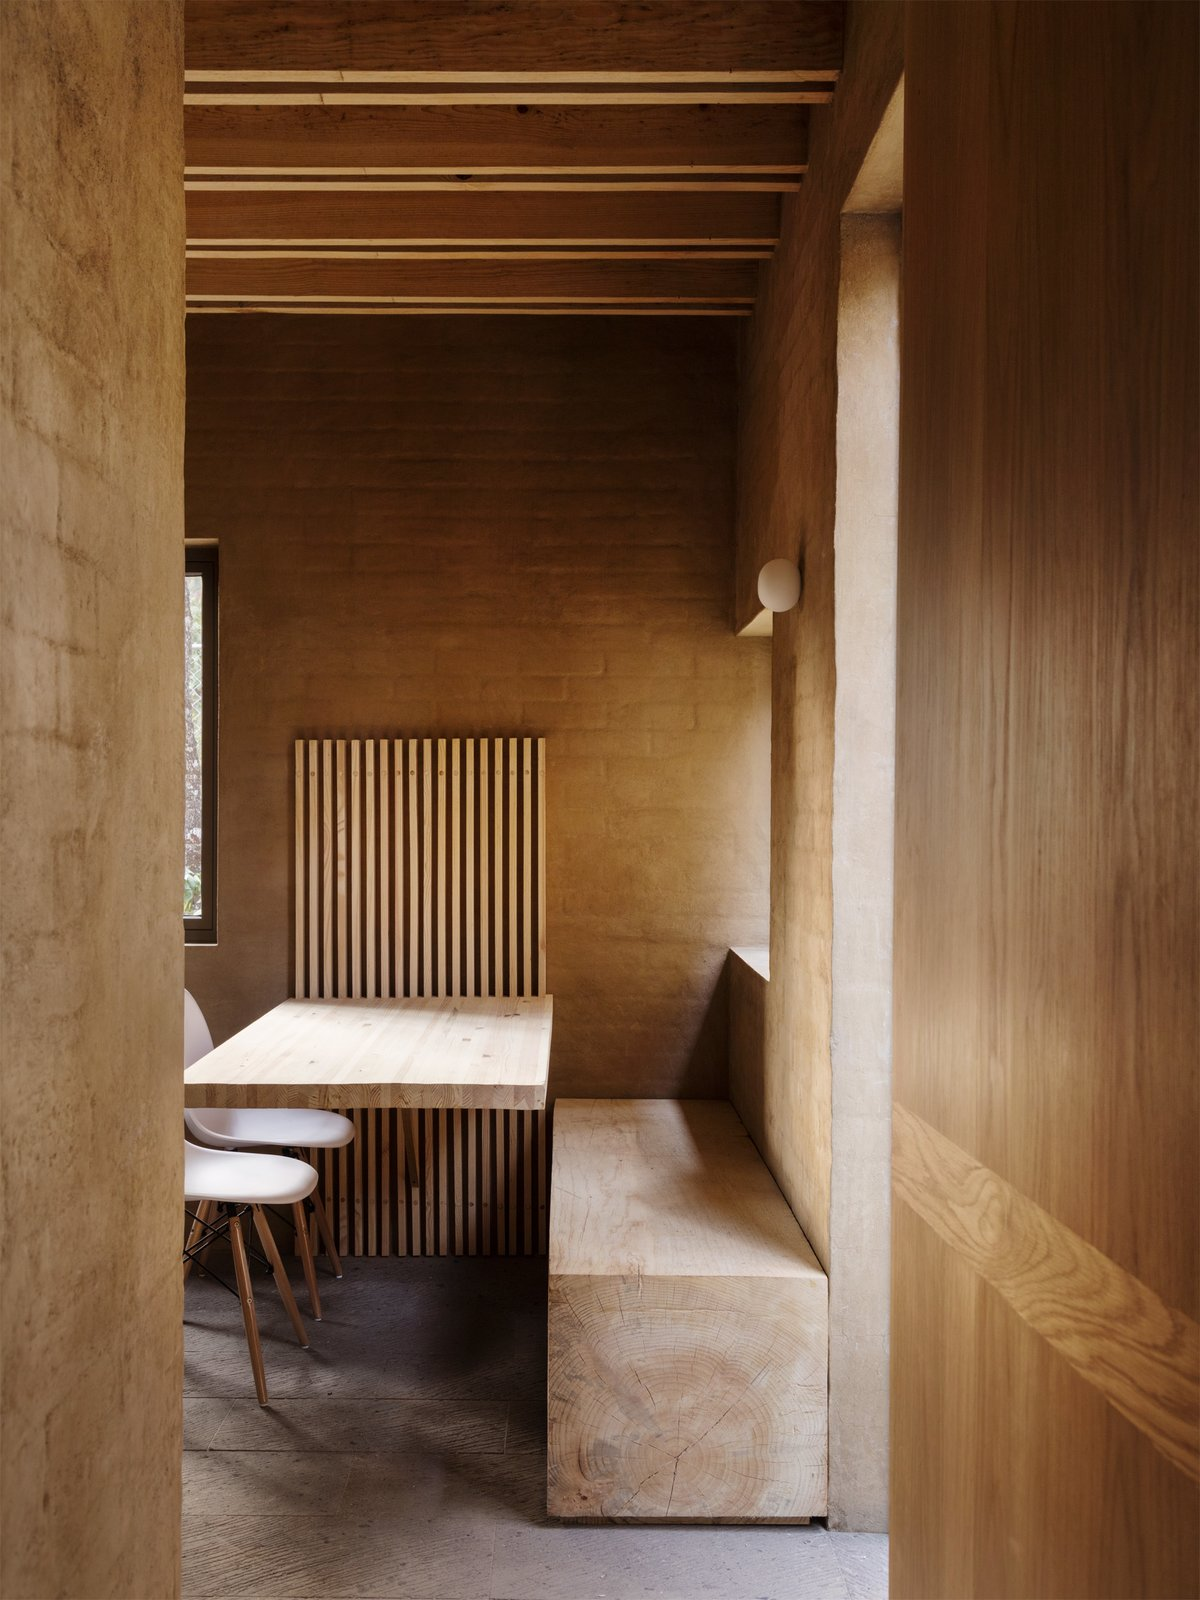 Dining Room, Wall Lighting, Chair, Bench, and Table A dining area with a built-in bench and table.  Best Photos from Five Cubist Hideaways Peek Out From a Mexican Pine Forest